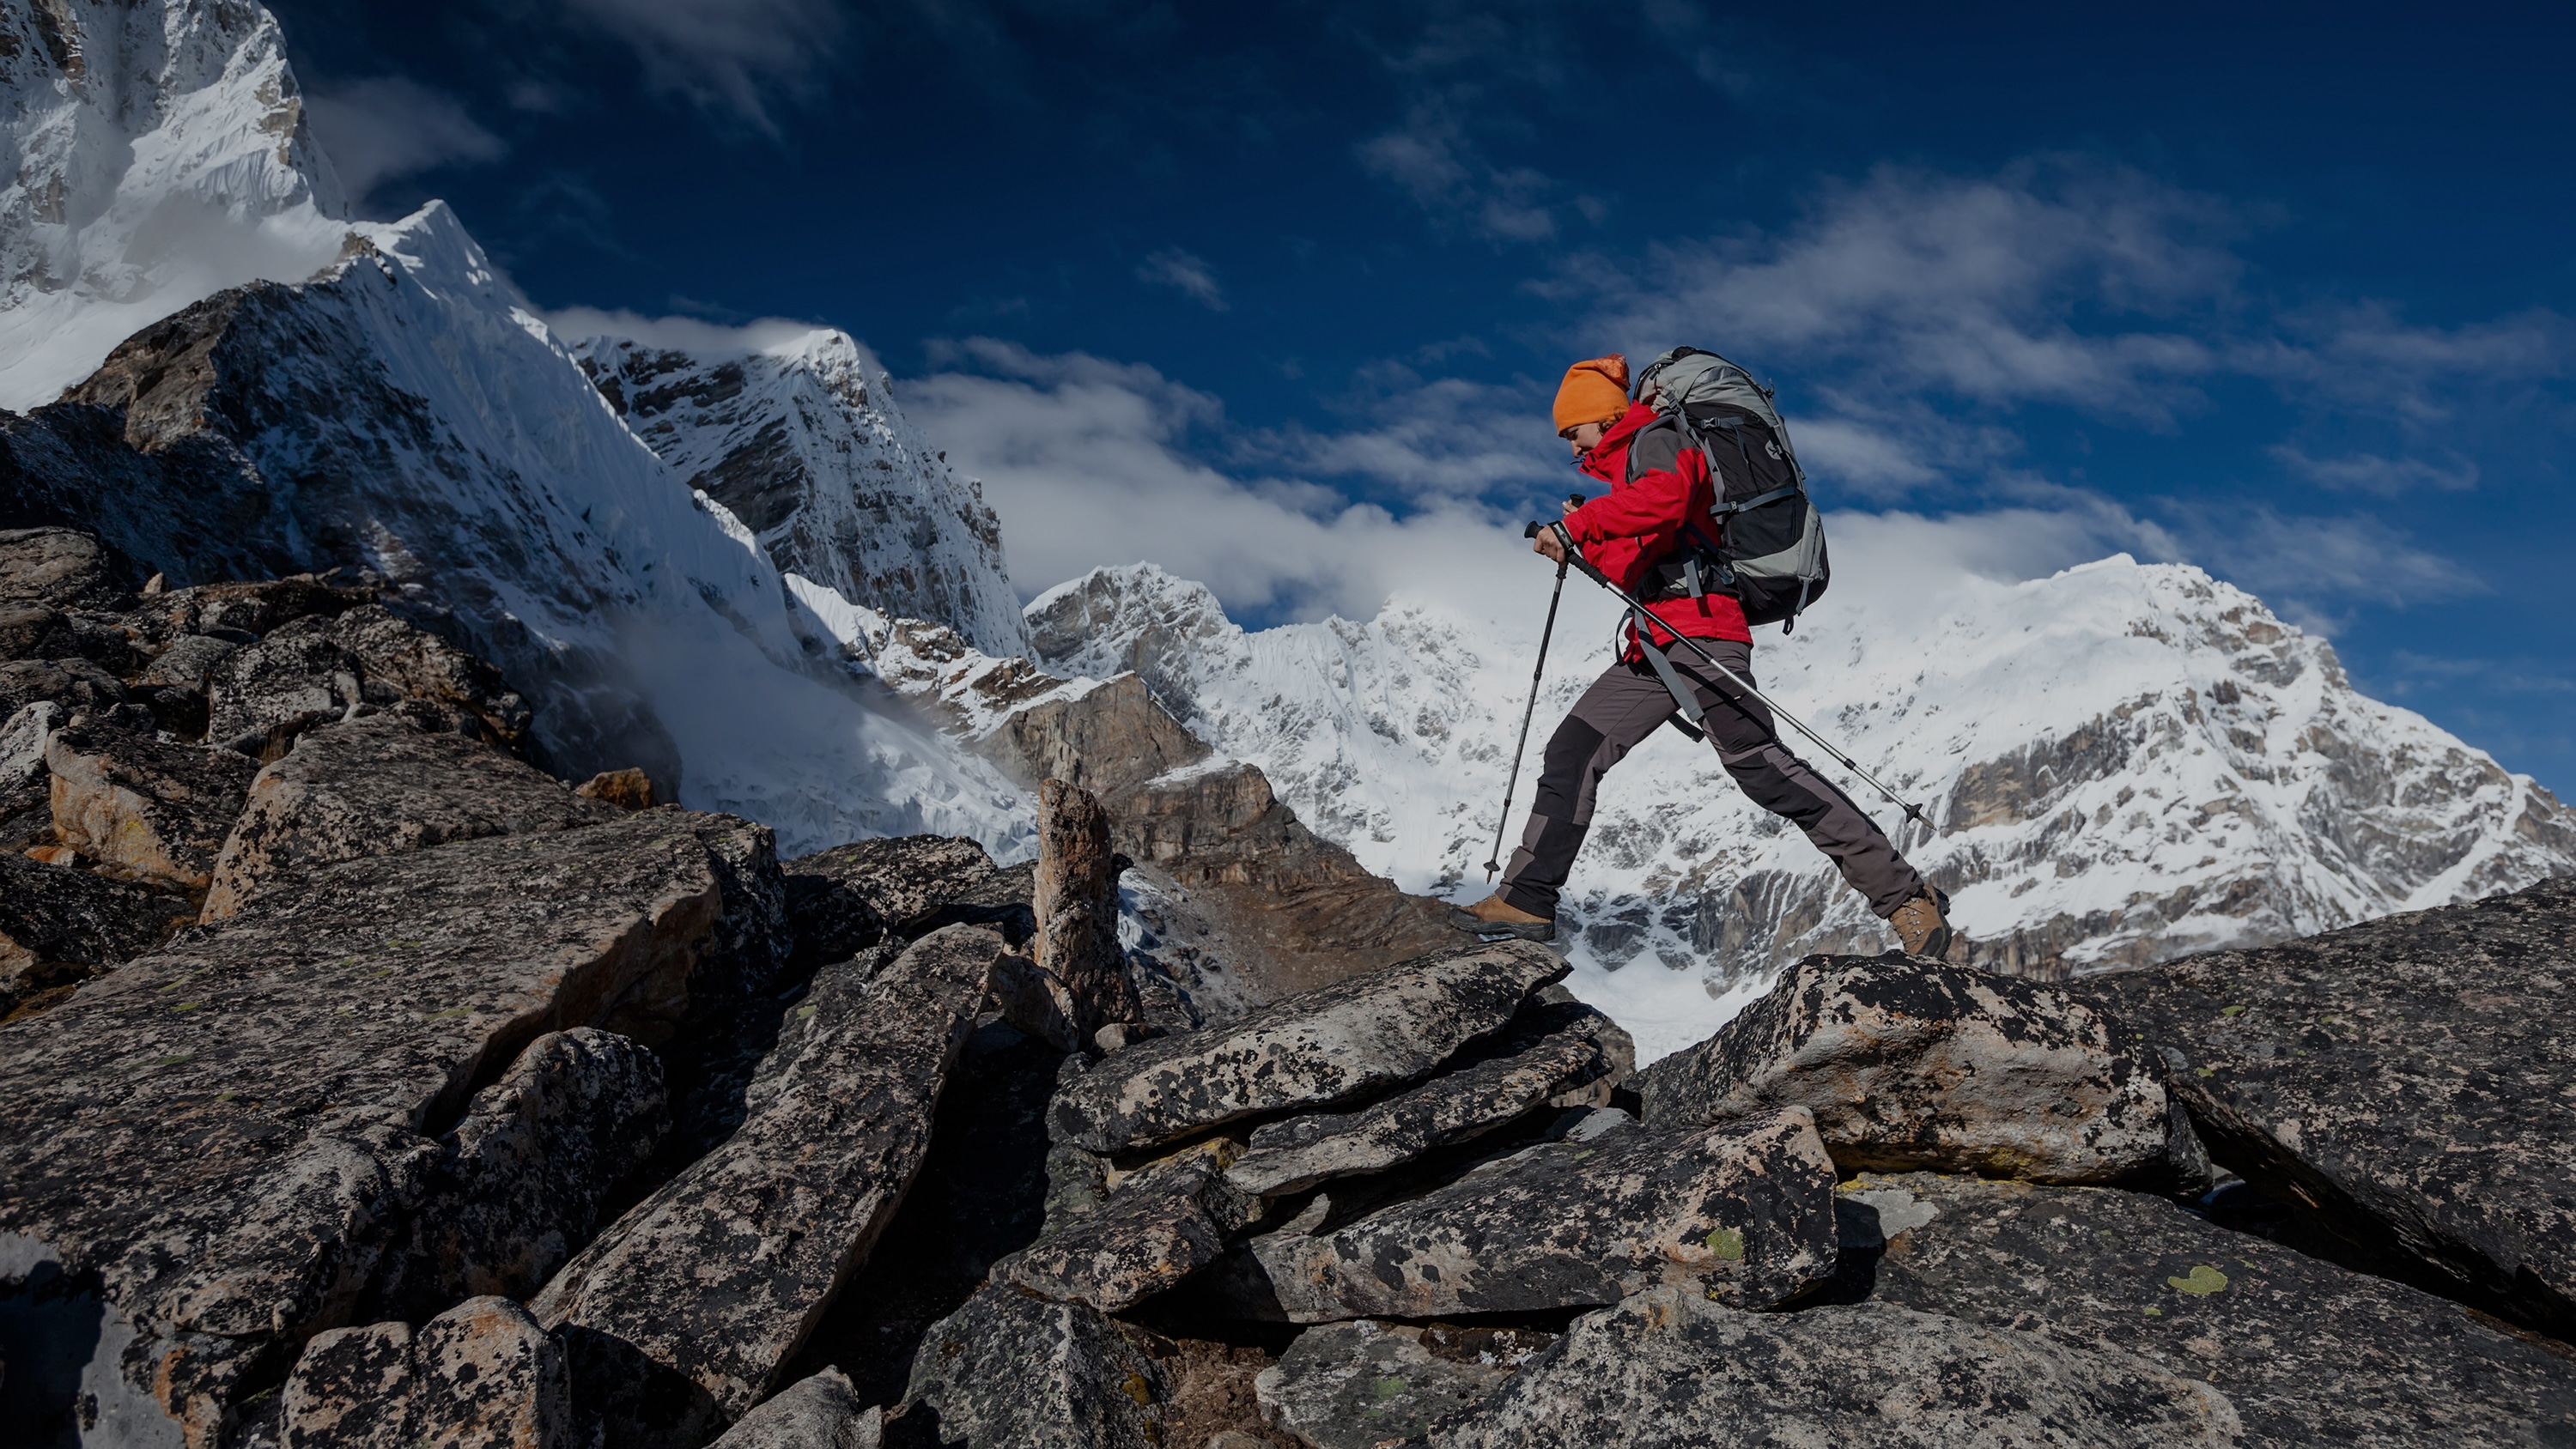 Experienced Hiker Crossing Difficult Terrain Amidst Snow-Capped Peaks | Outdoor Adventure Image